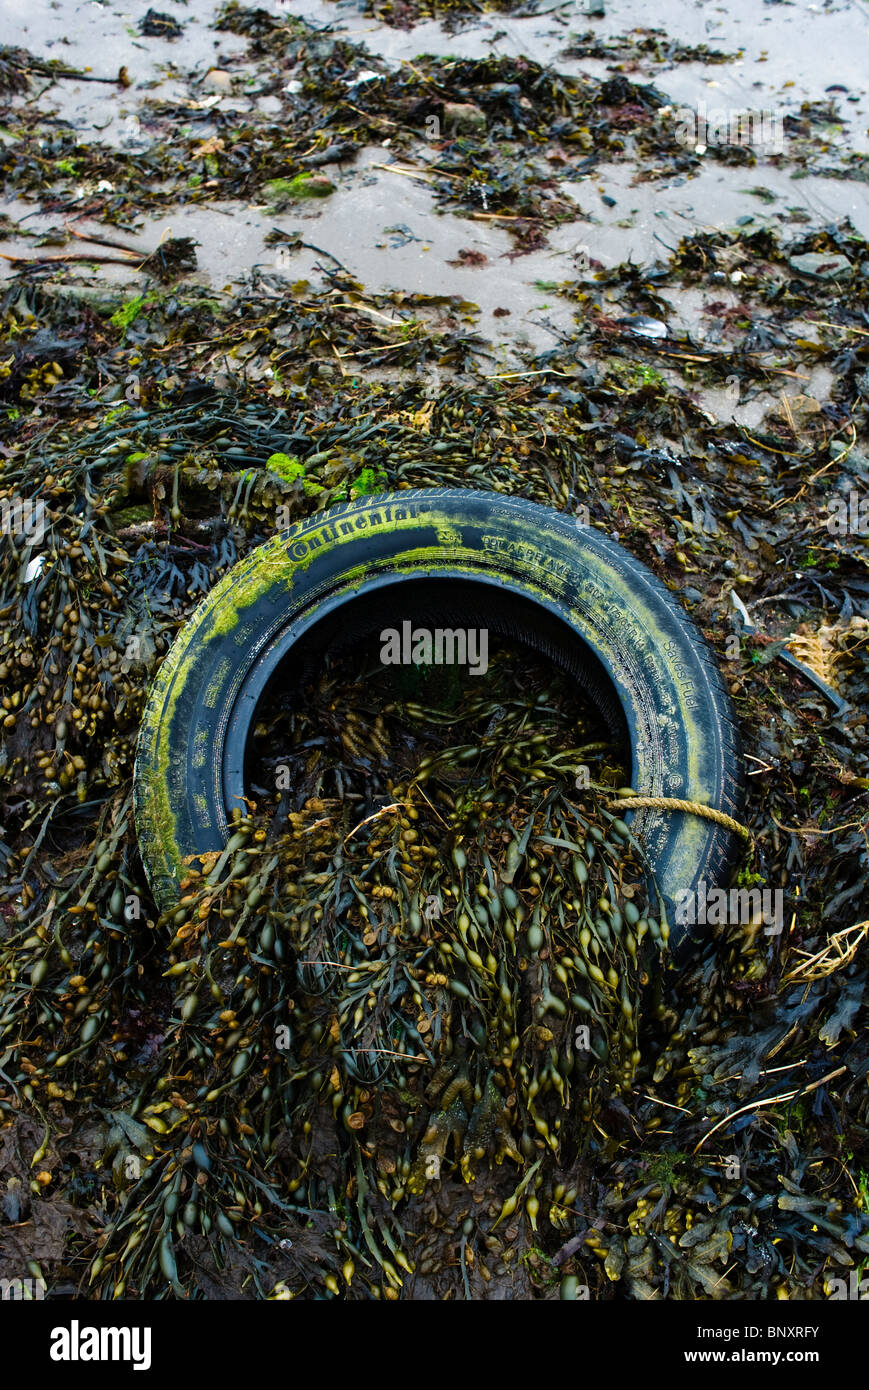 A dumped tyre makes an interseting composition with seaweed - Stock Image